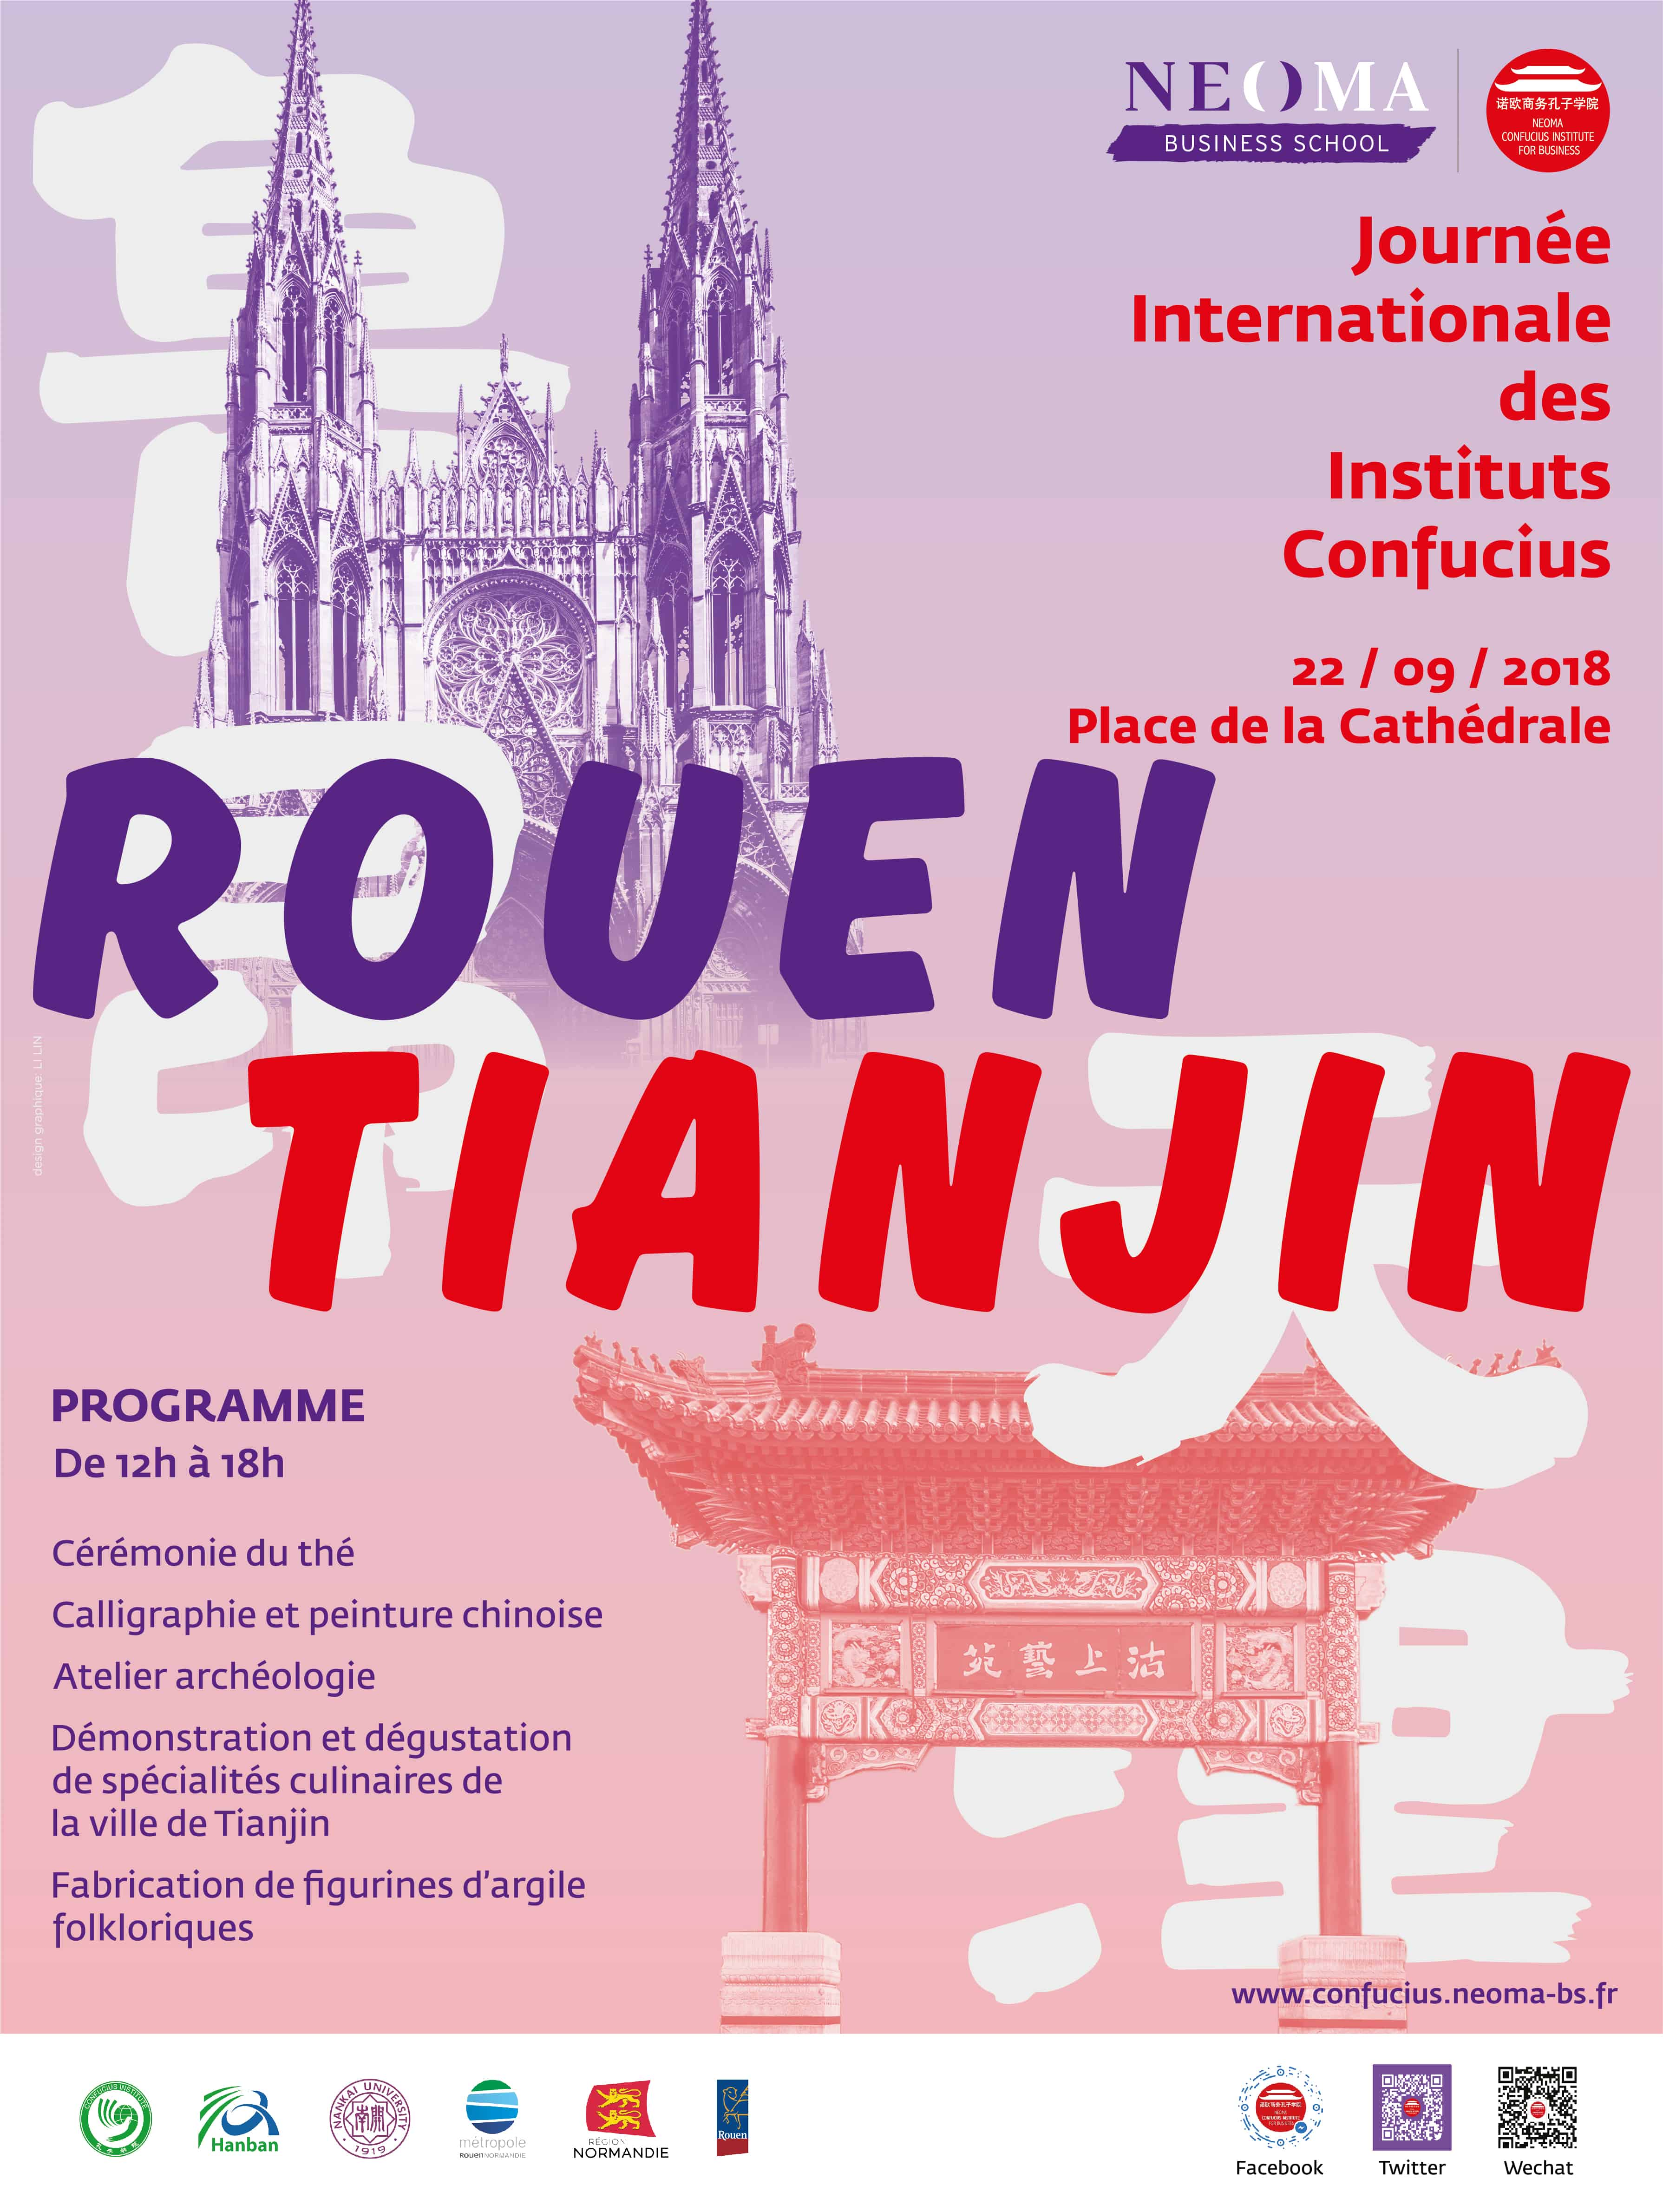 Evénement - Journée Internationale des Instituts Confucius